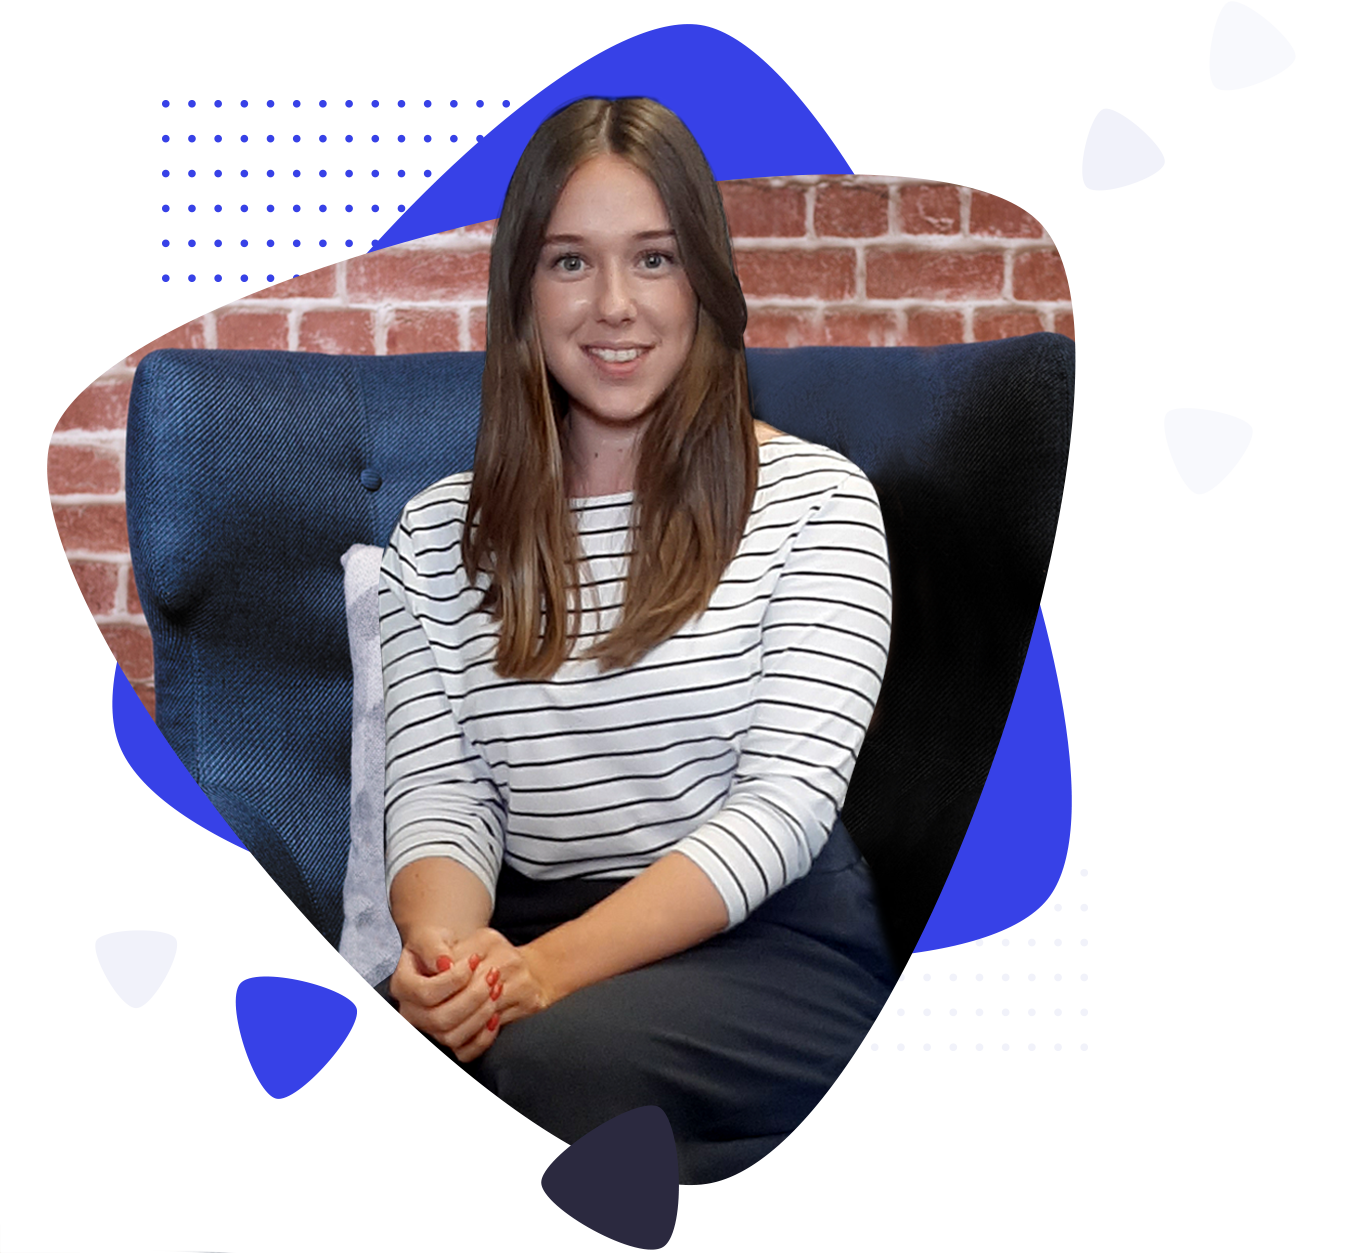 Paige, Digital Marketing Executive